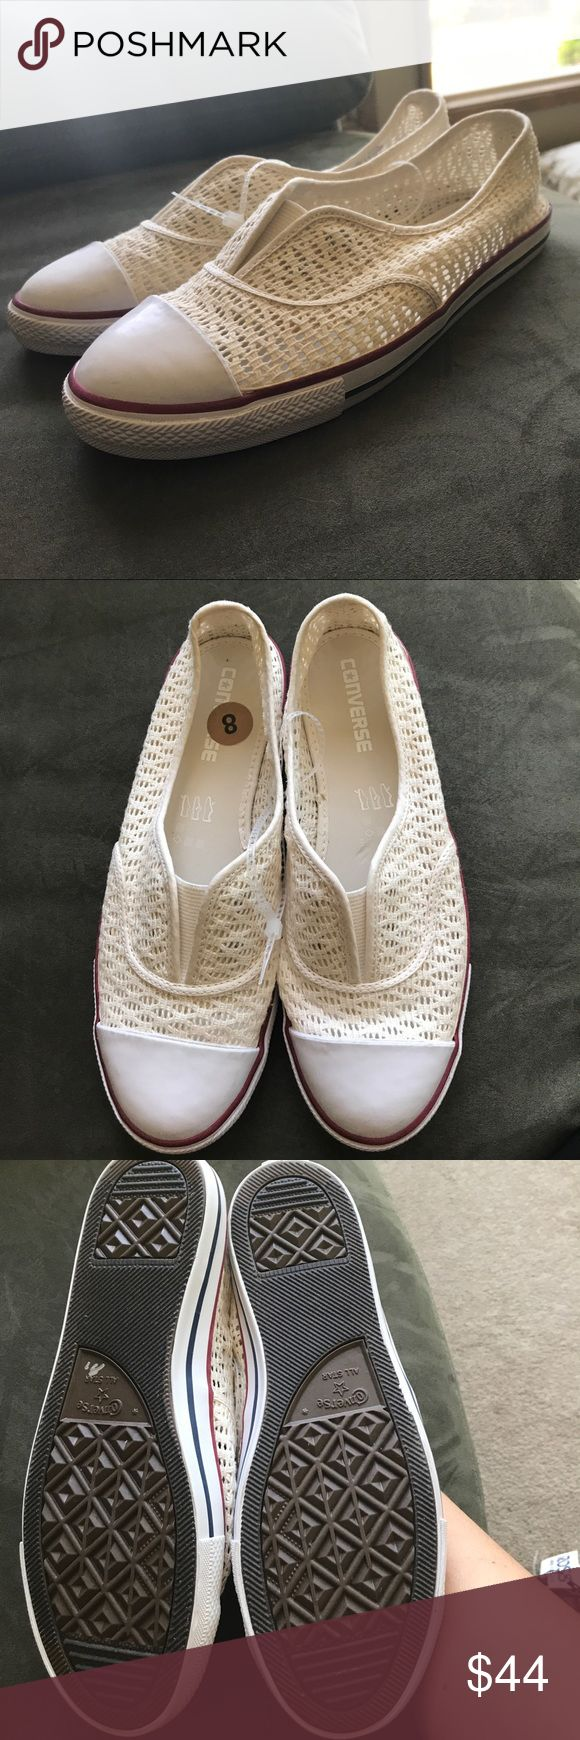 NWT Converse slip ons. Size 8. NWT Converse slip ons. Size 8. Super cute for forth of July! Comfy elastic top! Converse Shoes Sneakers